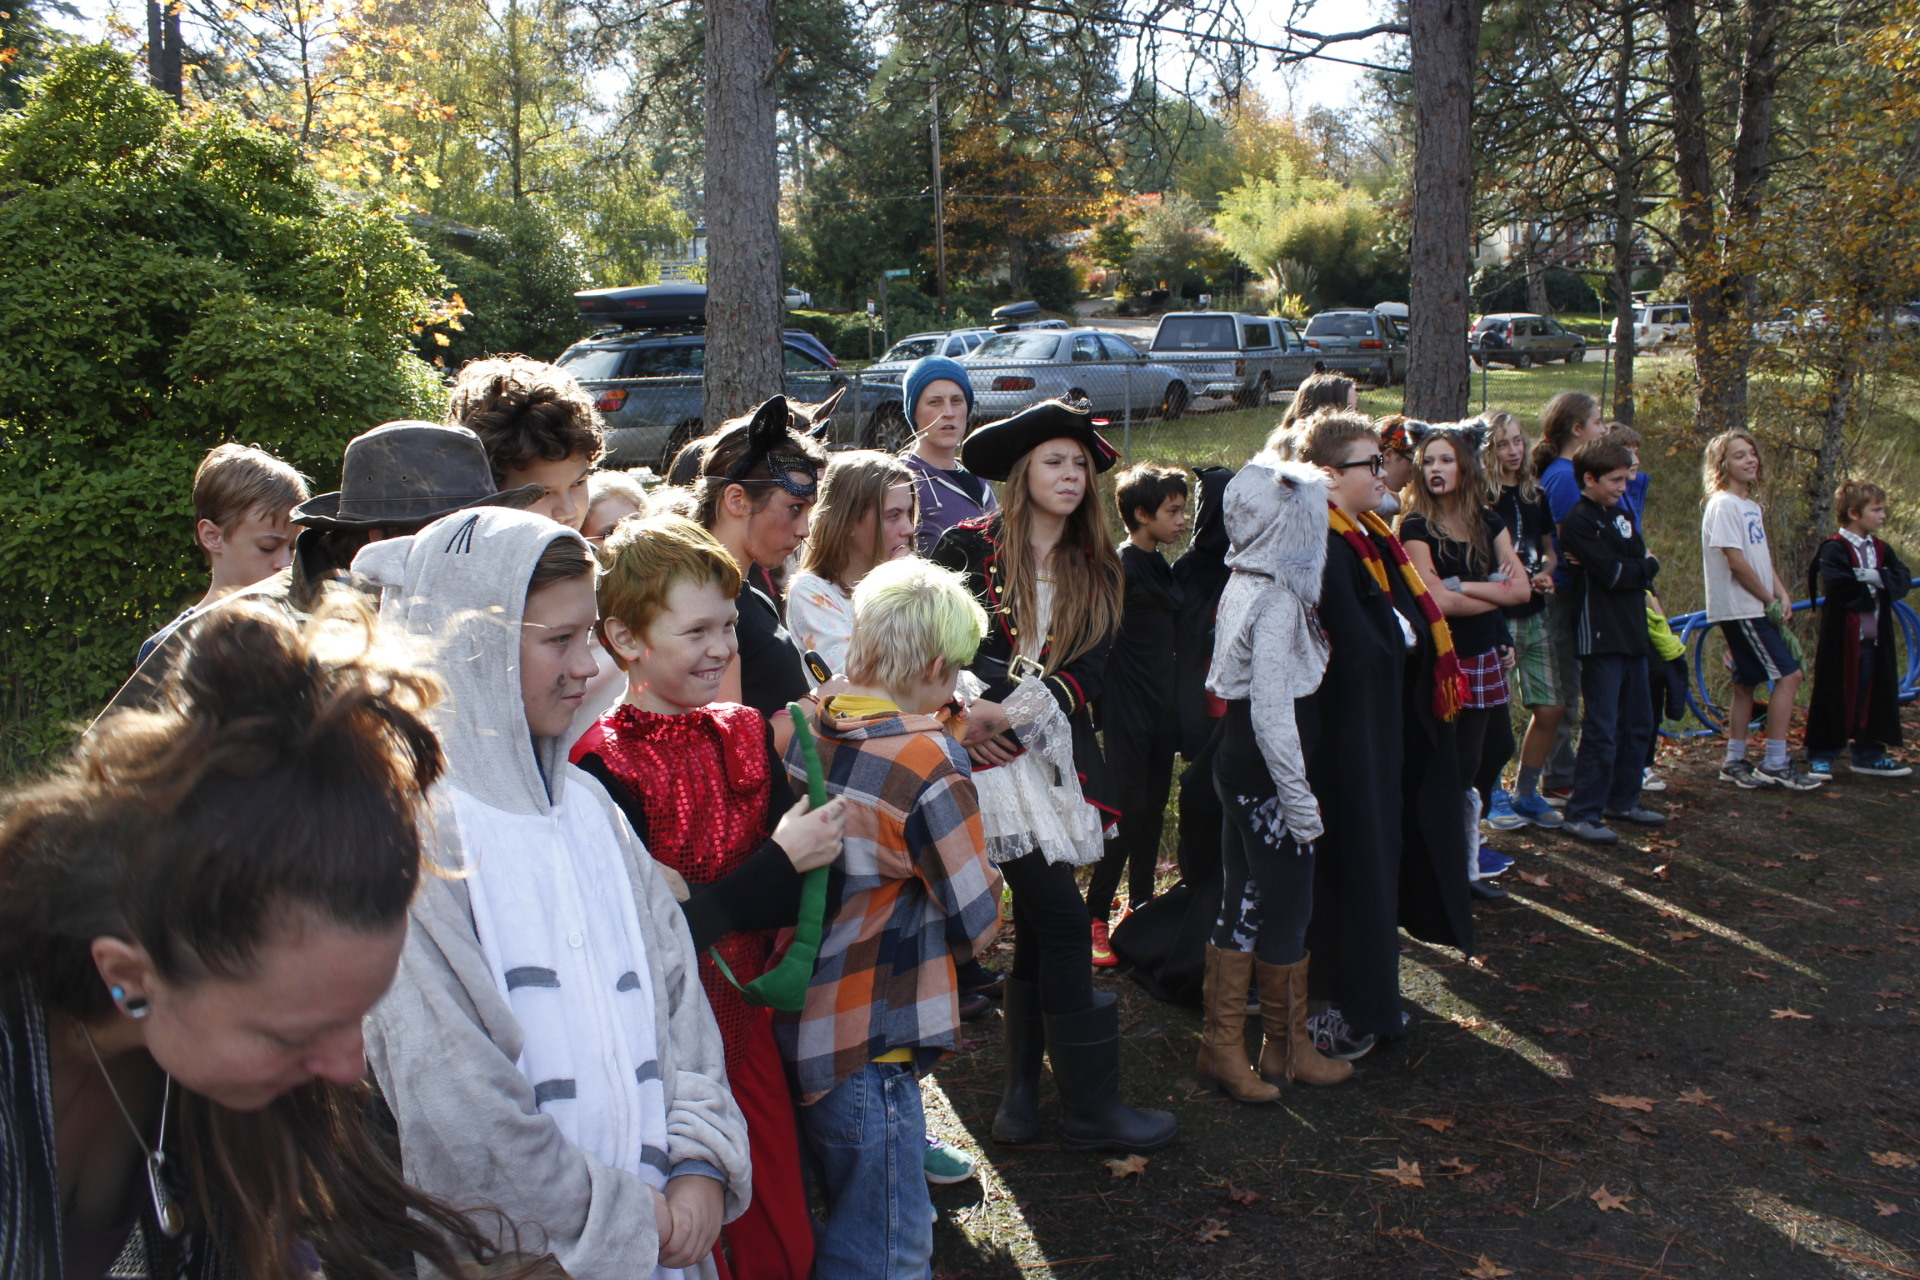 Village School Halloween Parade - 2016 [click image to see entire picture]